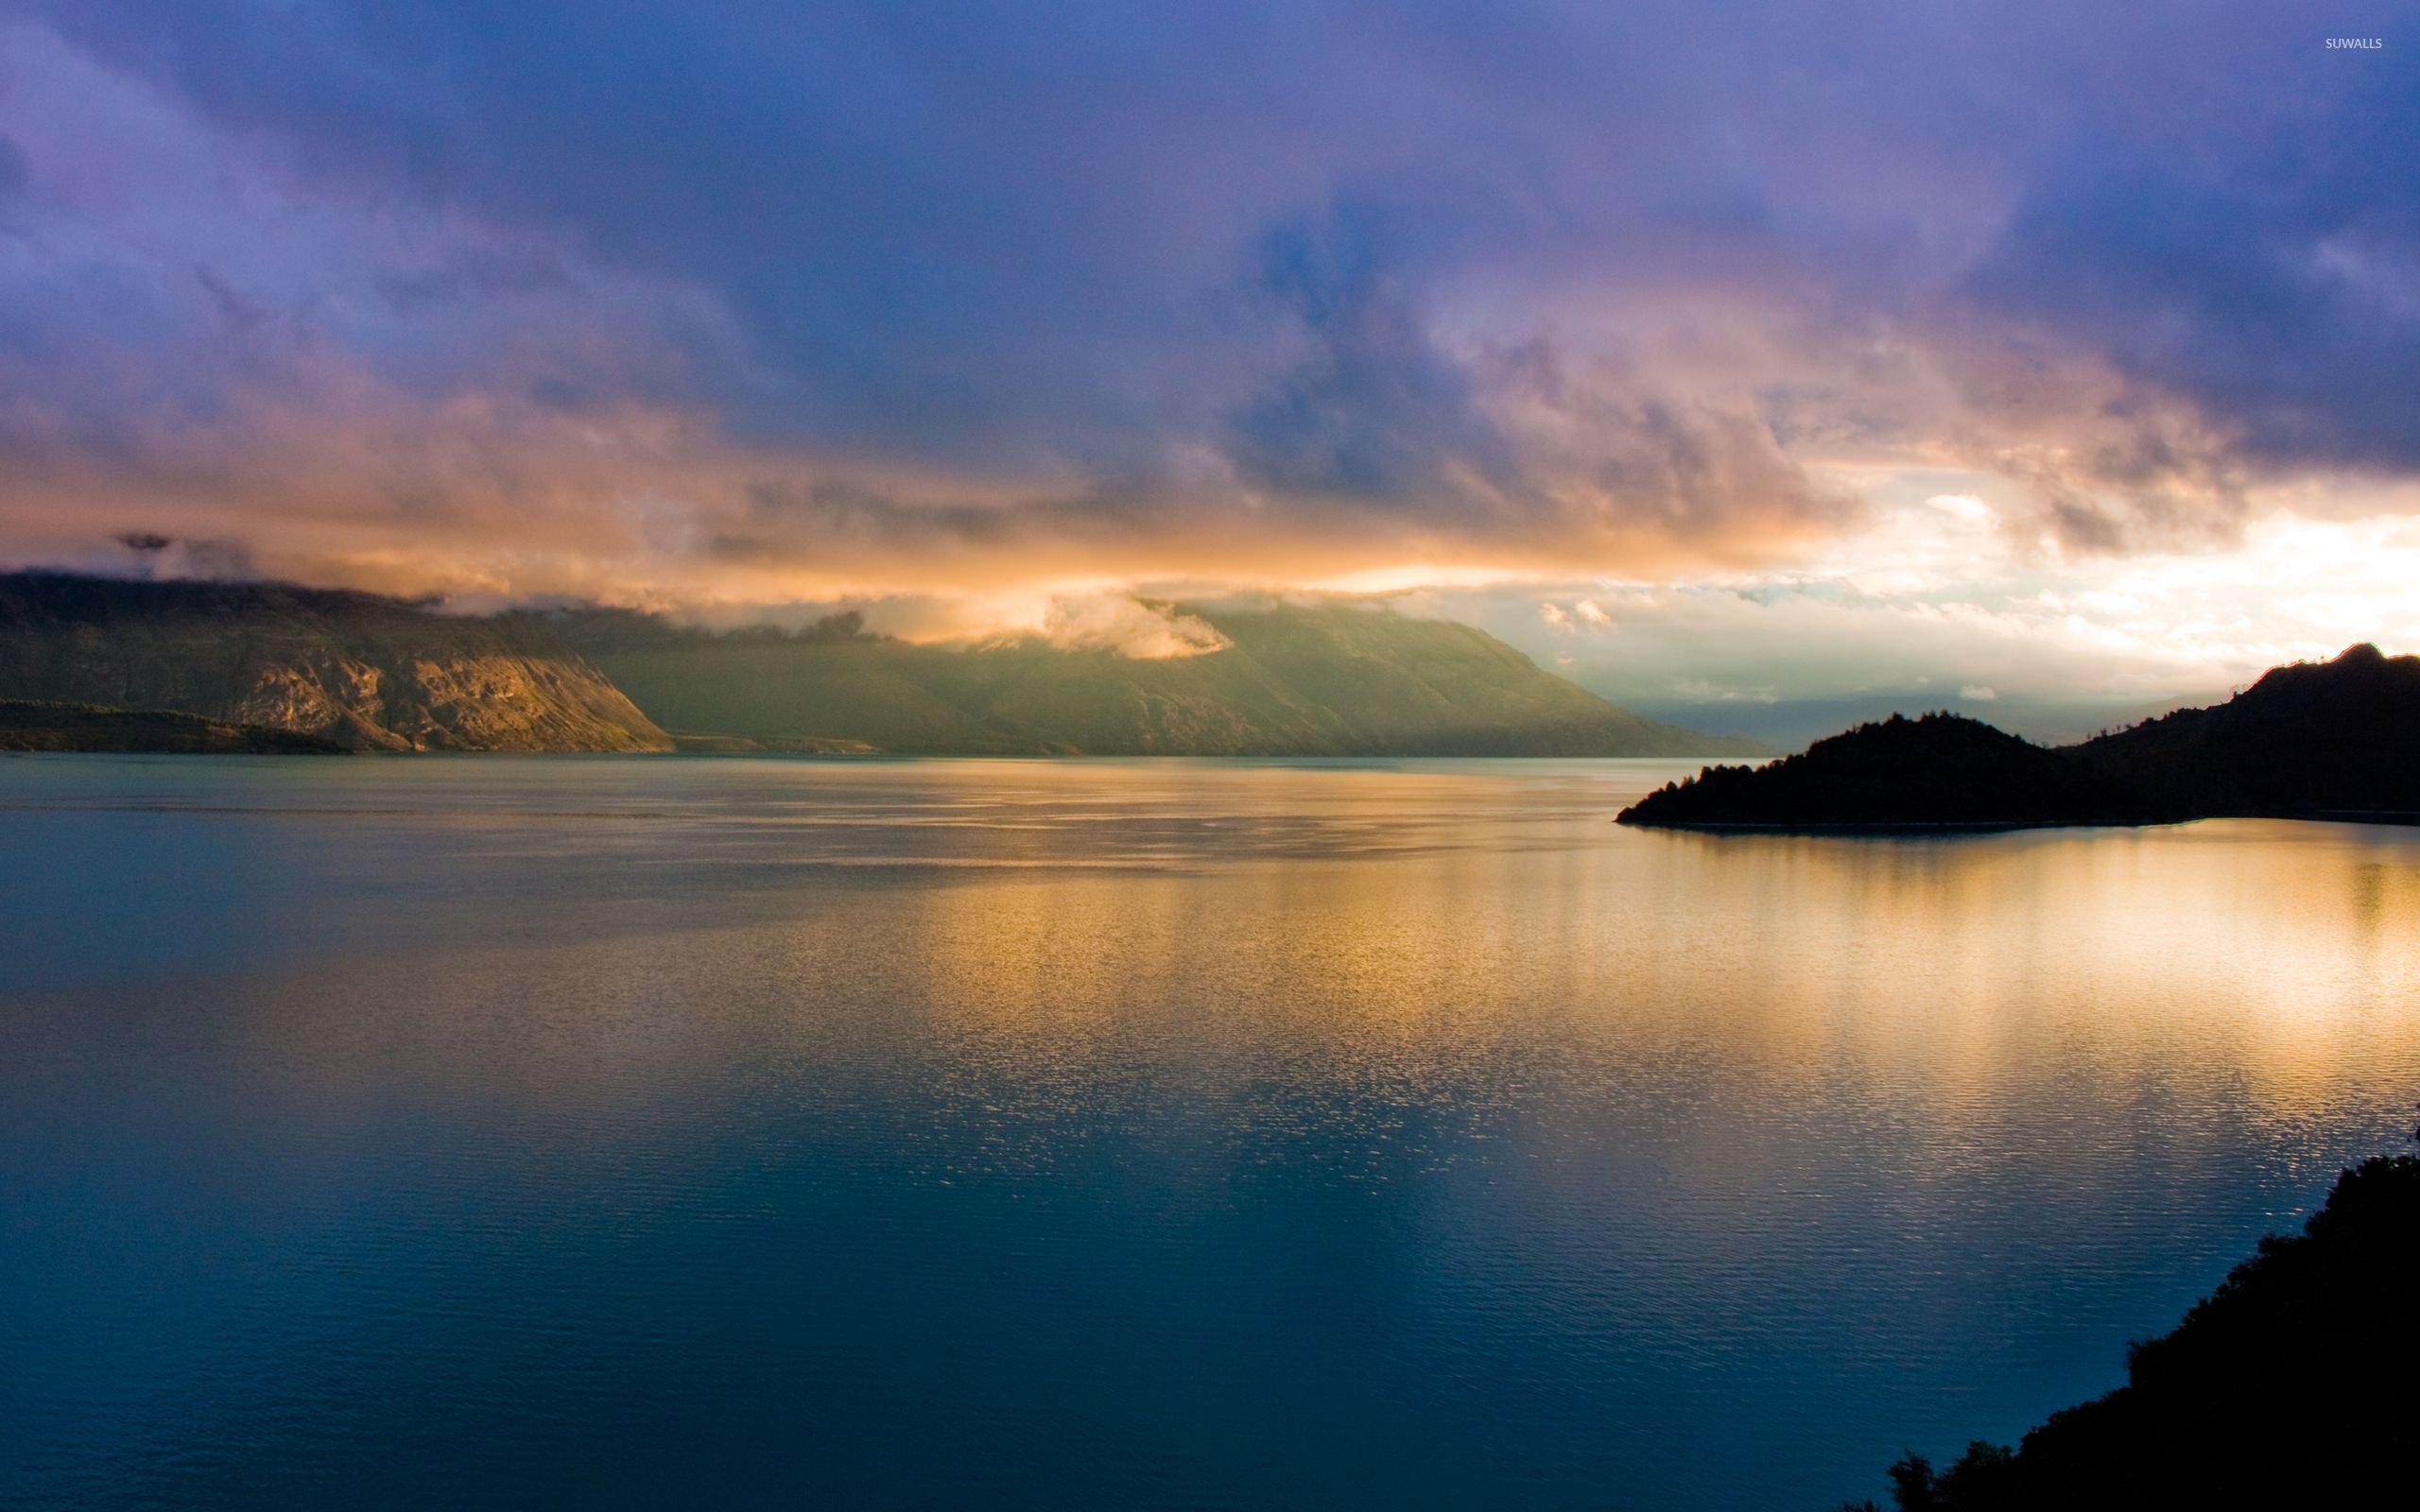 Foggy Mountains By The Calm Water At Sunset Wallpaper Nature